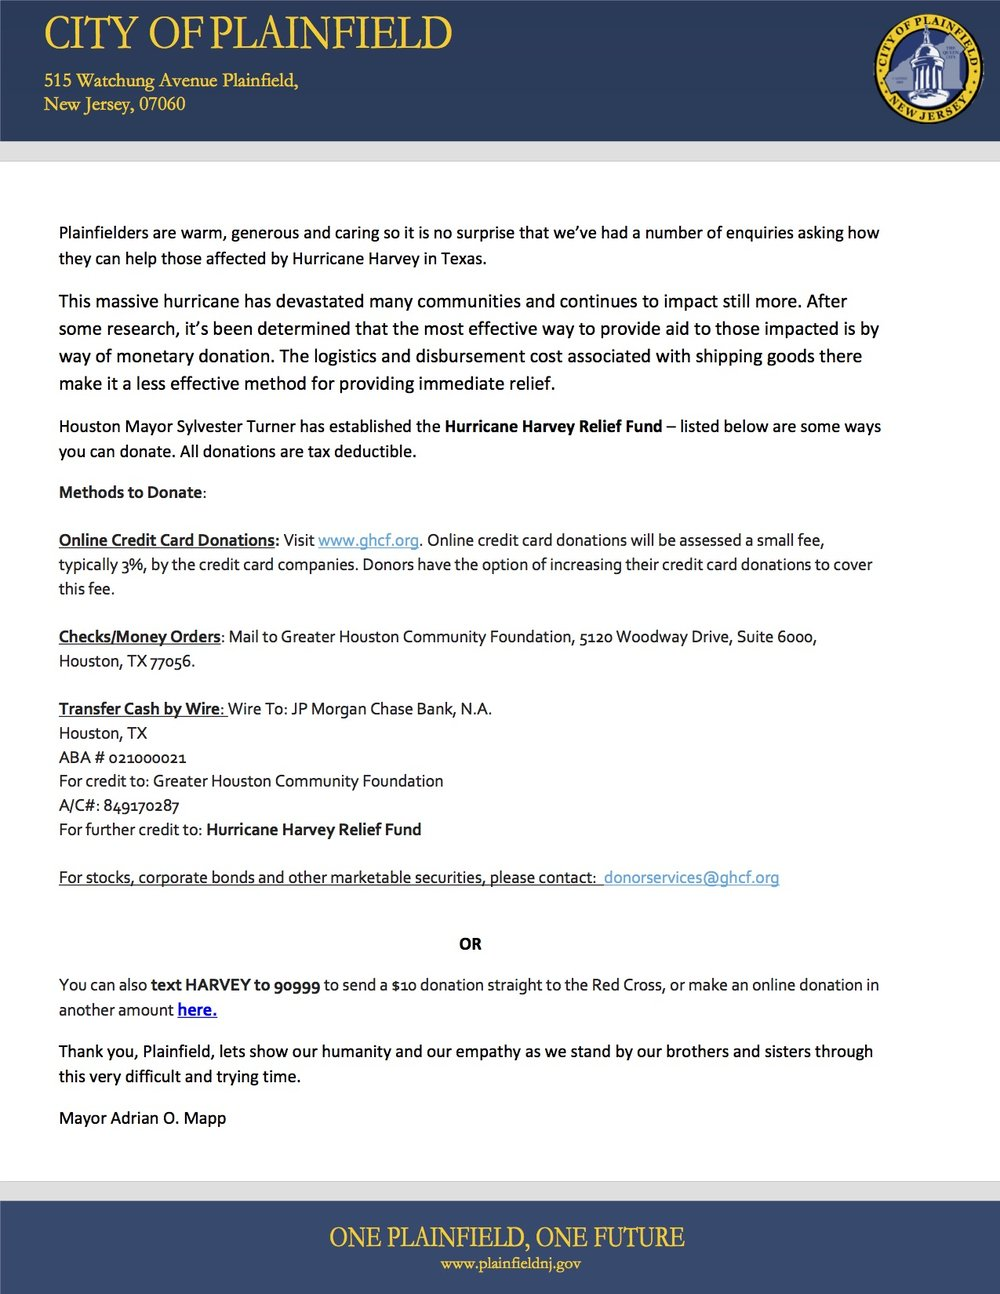 HURRICANE HARVEY RELIEF LETTER.jpg